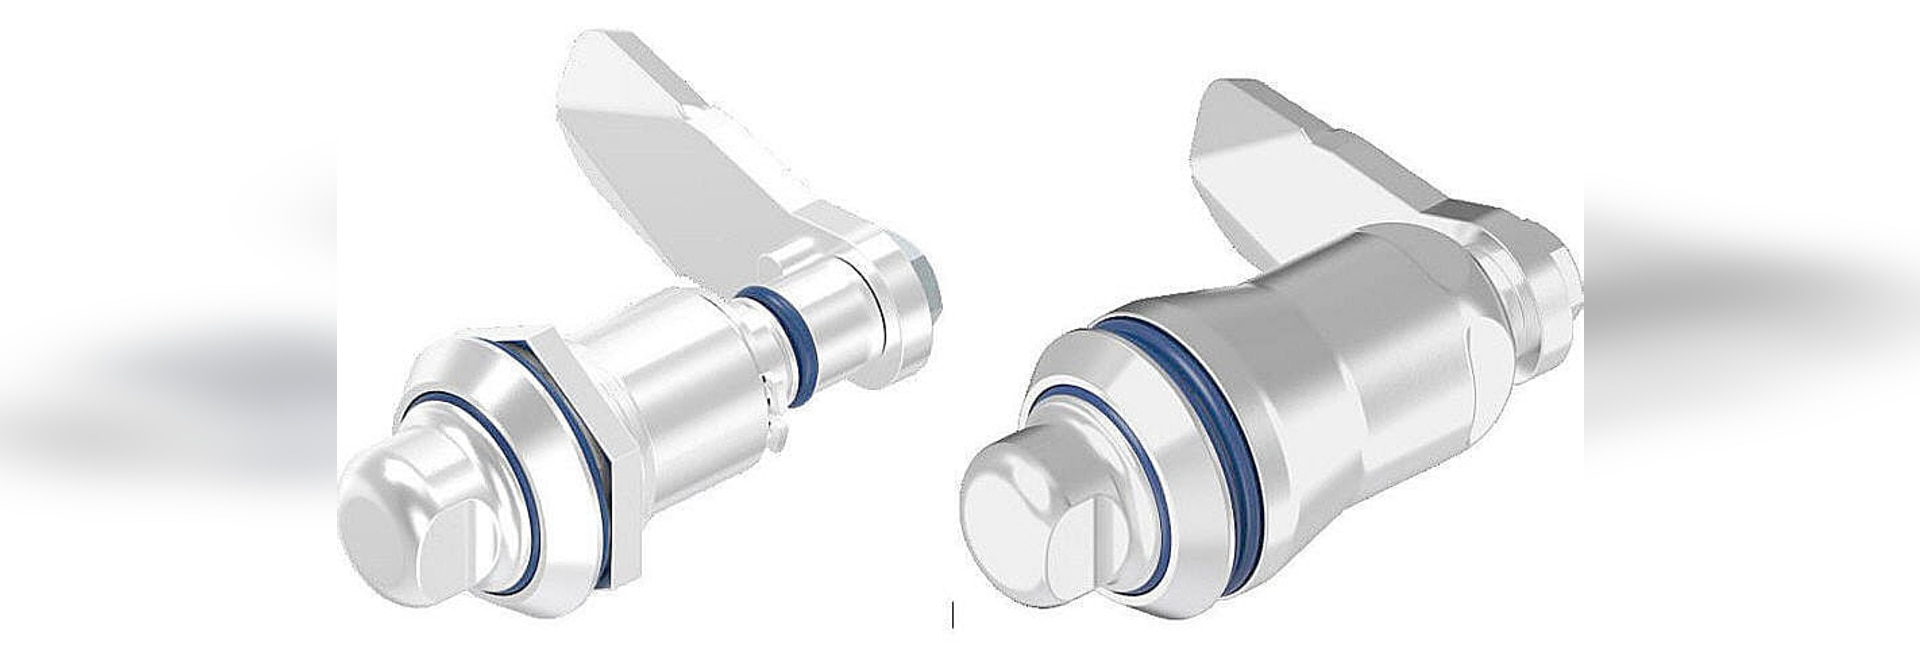 New: Program 1000 - Stainless Steel Compression Latches for Hygienic Areas